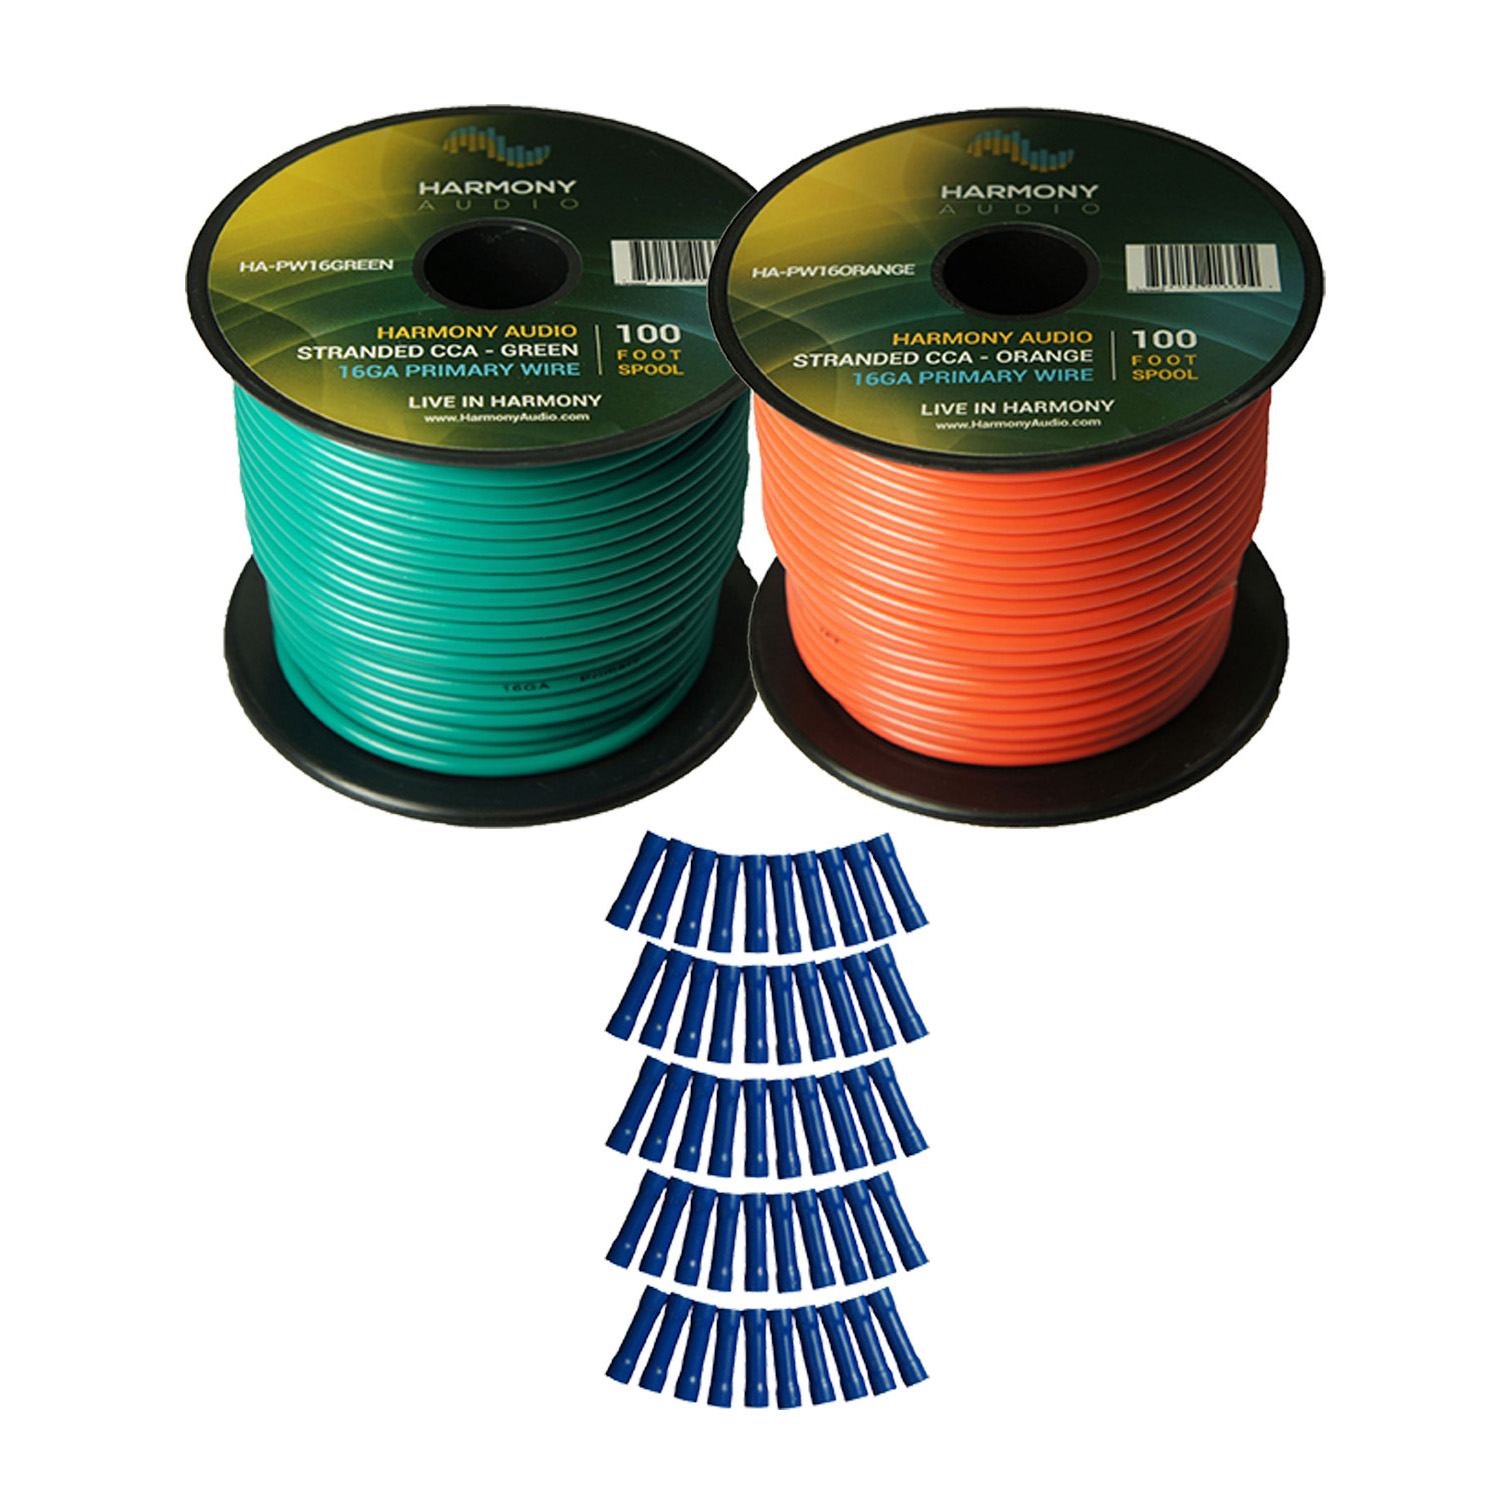 Harmony Audio Primary Single Conductor 16 Gauge Power or Ground Wire - 2 Rolls - 200 Feet - Green & Orange for Car Audio / Trailer / Model Train / Remote